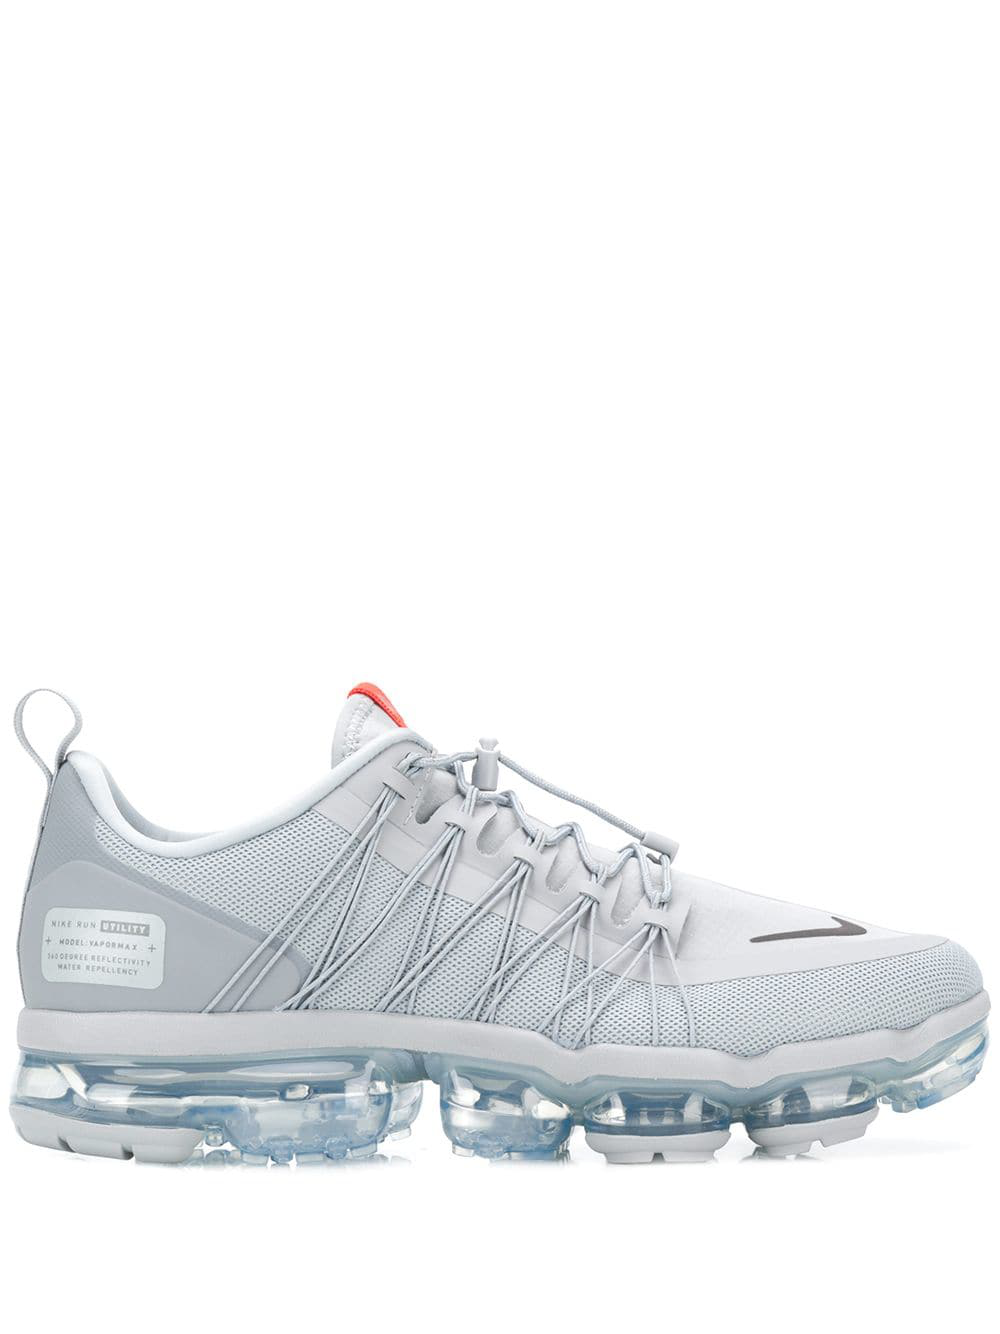 c4688beaca Nike Air Vapormax Run Utility Sneakers - Grey | ModeSens